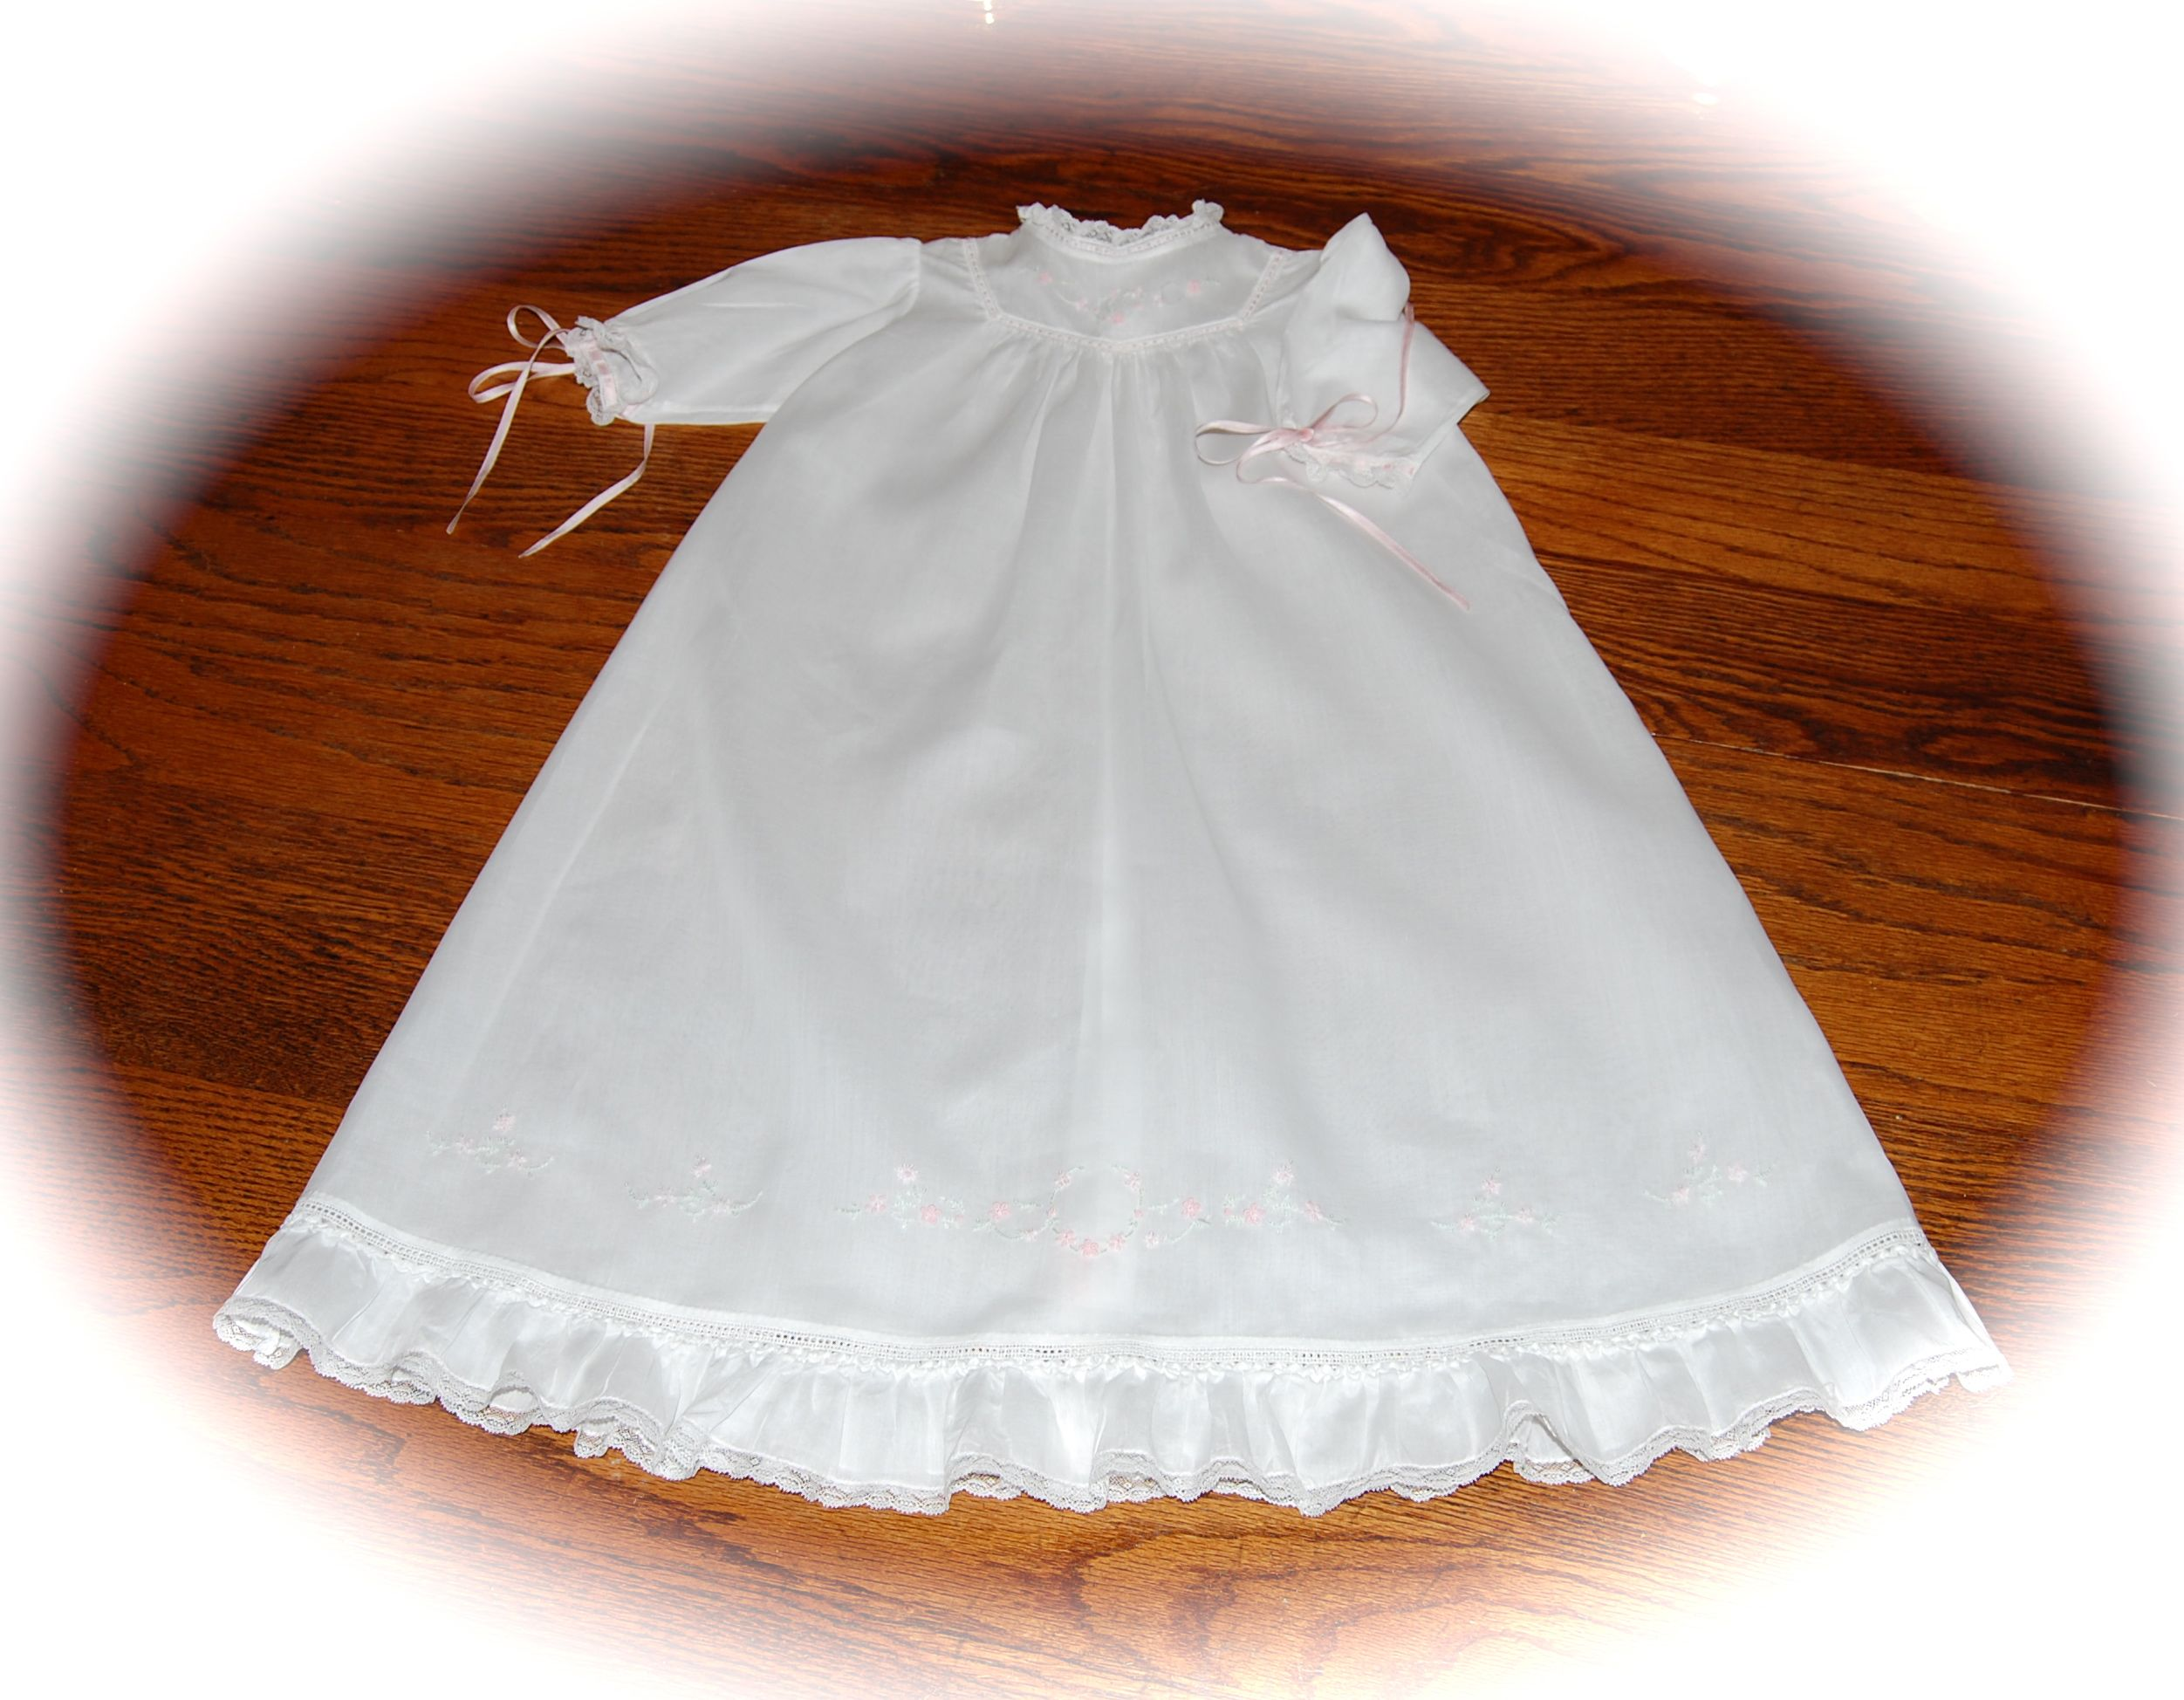 French Handsewn Circa 1920 Baby Gown Kit